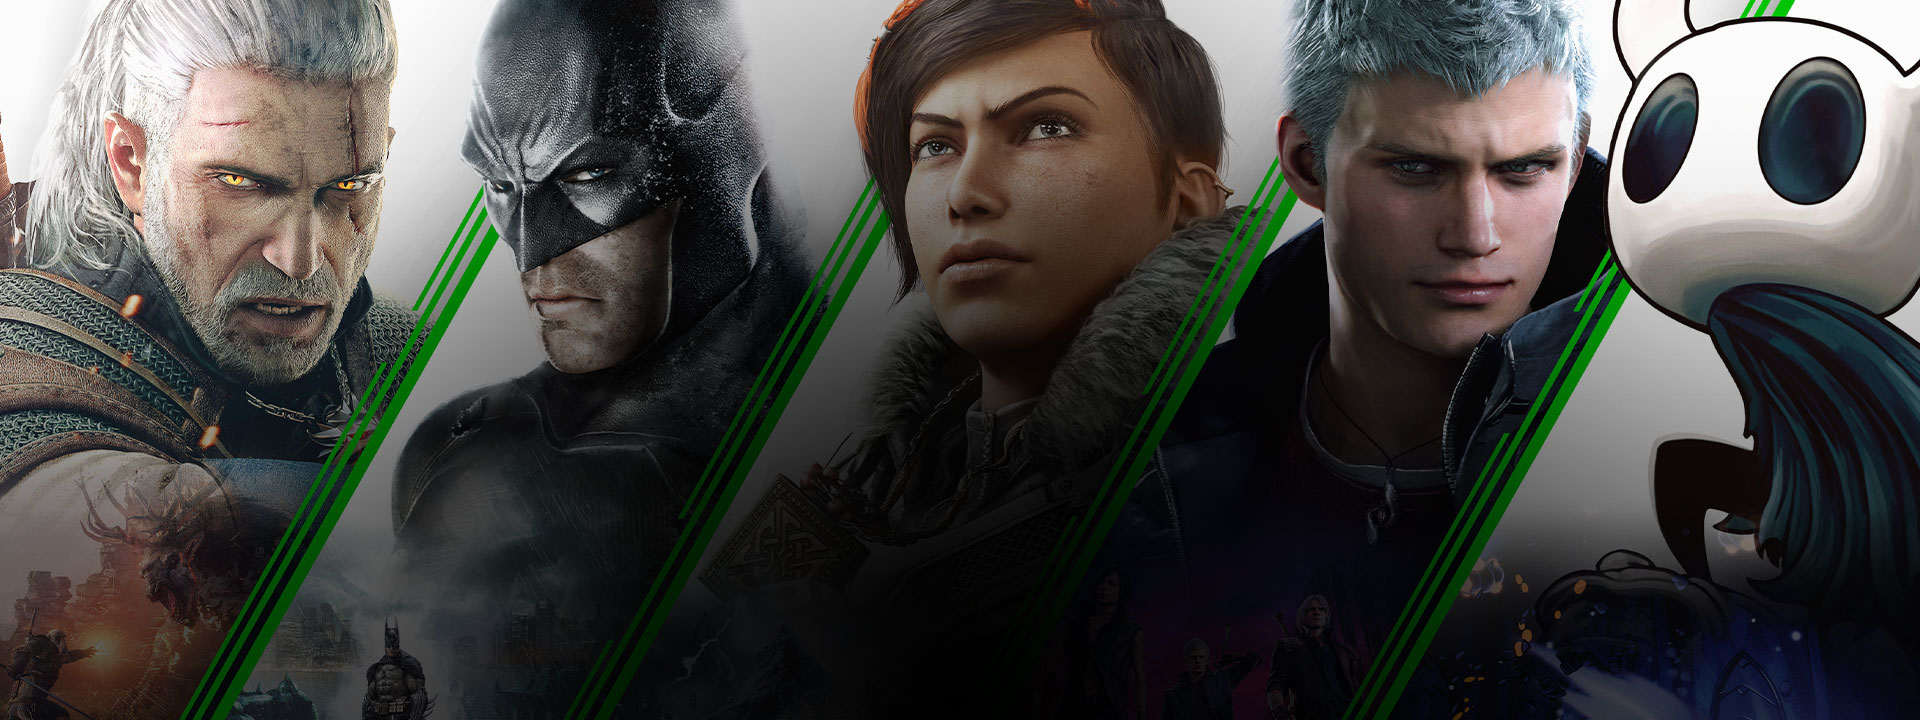 Un collage de juegos disponibles en Xbox, como The Witcher 3: Wild Hunt, Batman (serie Arkham), Gears 5, Devil May Cry 5 y Hollow Knight.